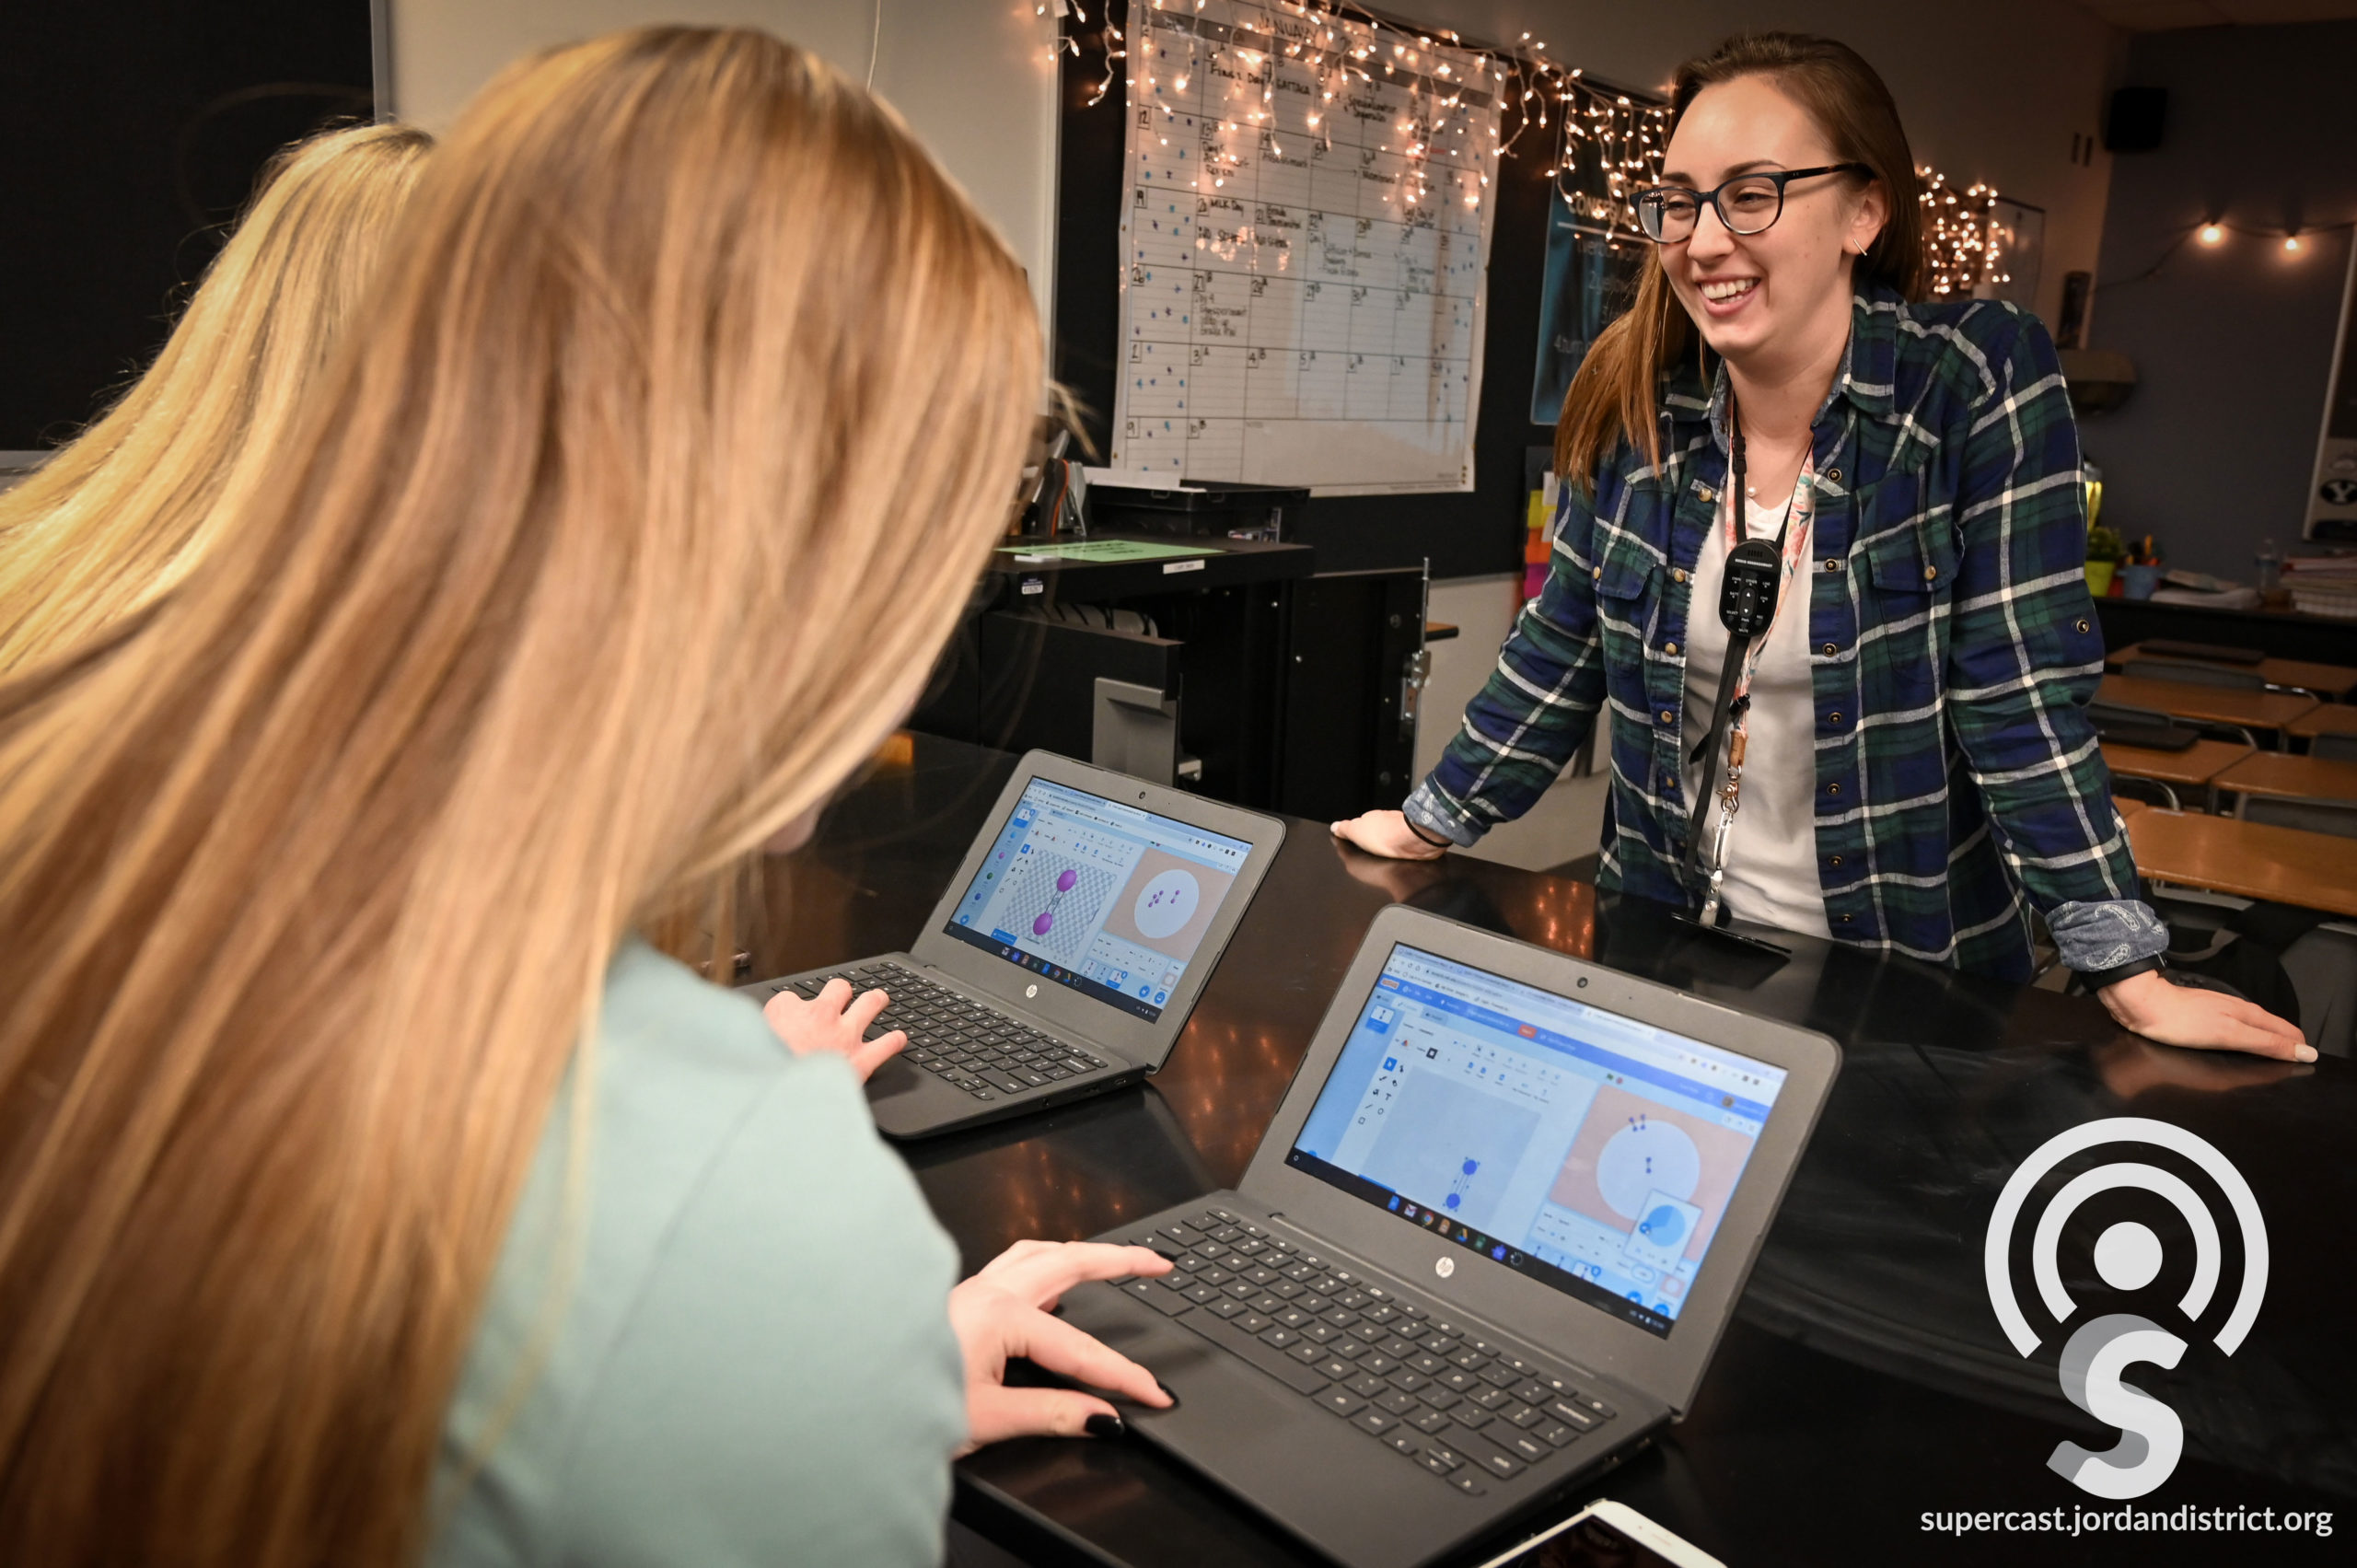 A teacher smiles as she works with two students on laptops